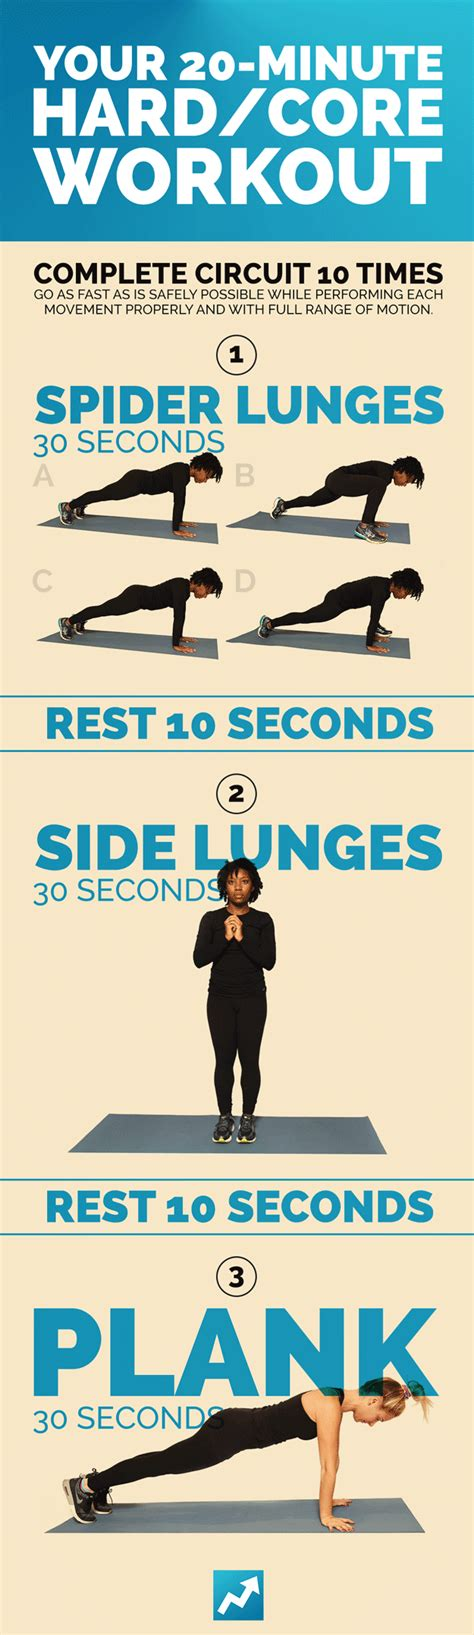 9 total workouts no equipment needed